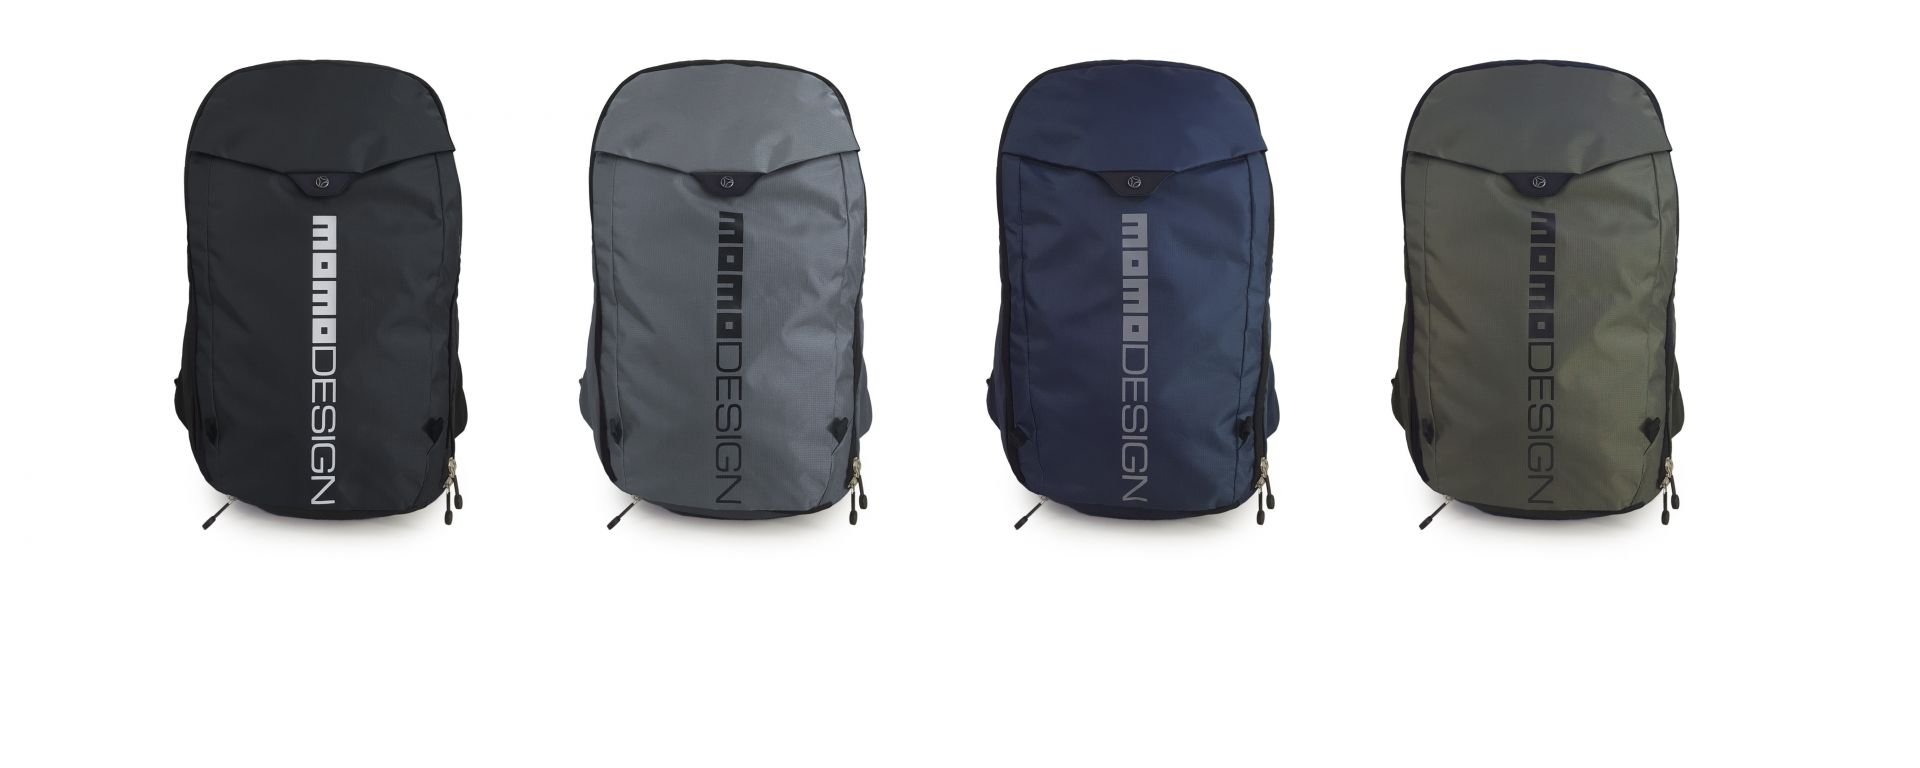 MomoDesign MD One Icon Backpack: la gamma colori